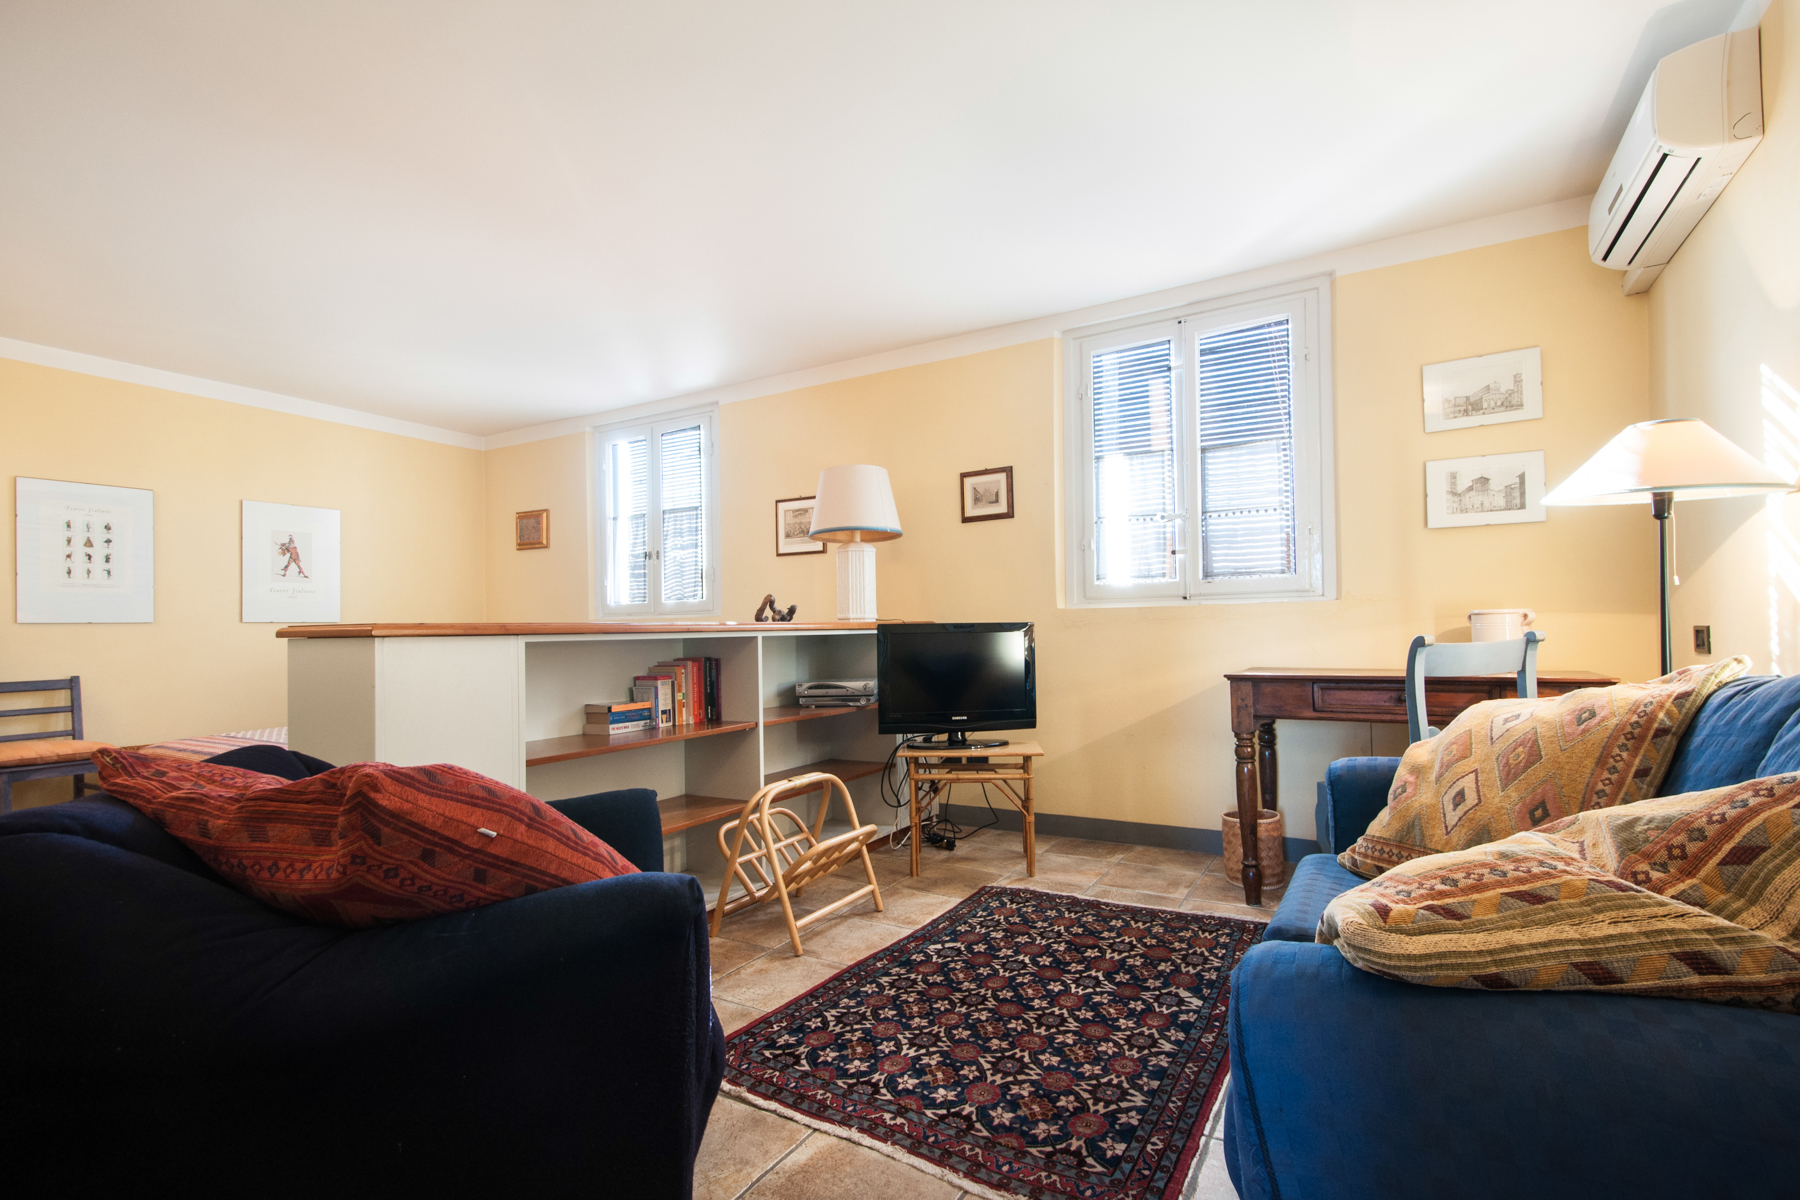 Additional photo for property listing at Bright apartment in Lucca city center Piazza San Giusto Lucca, Lucca 55100 Italia